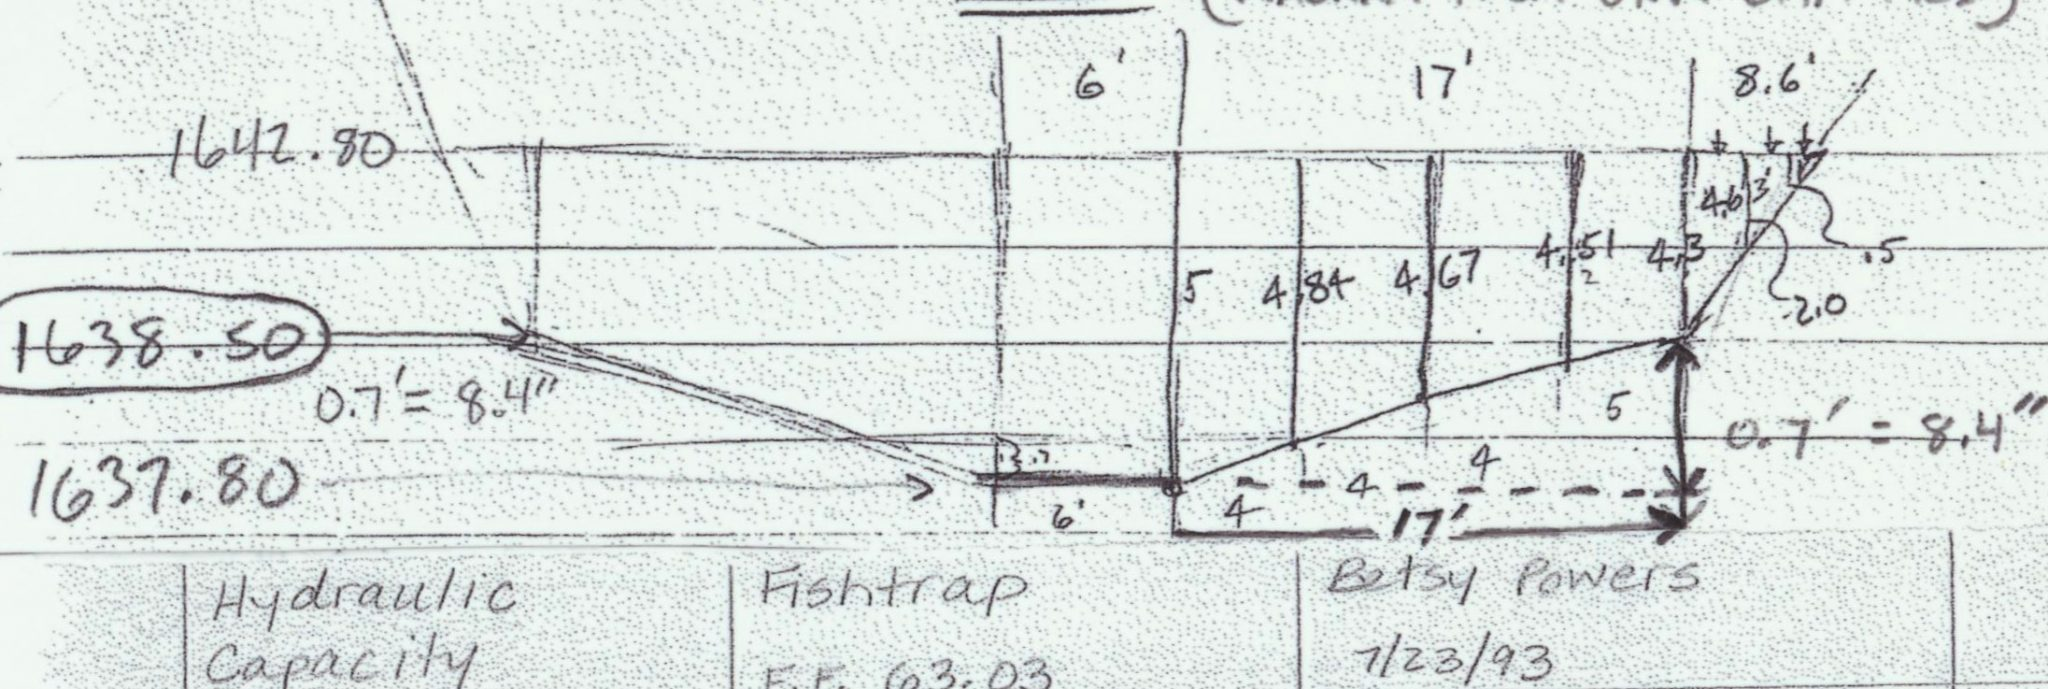 Fishtrap Dam - 9 The Weir-Schematic